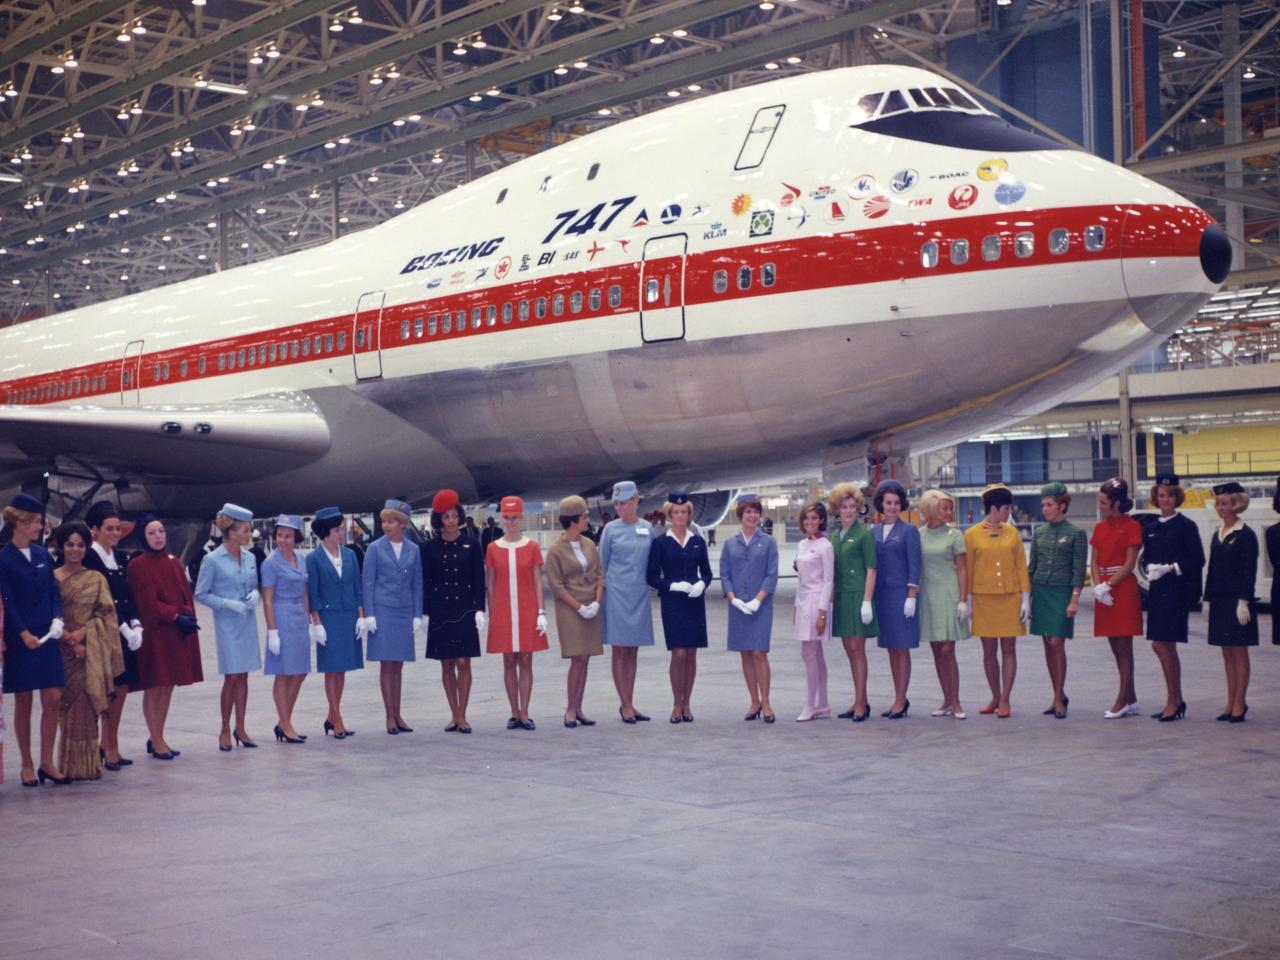 Qantas has announced a program of events to farewell its last remaining Boeing 747. Picture: Qantas